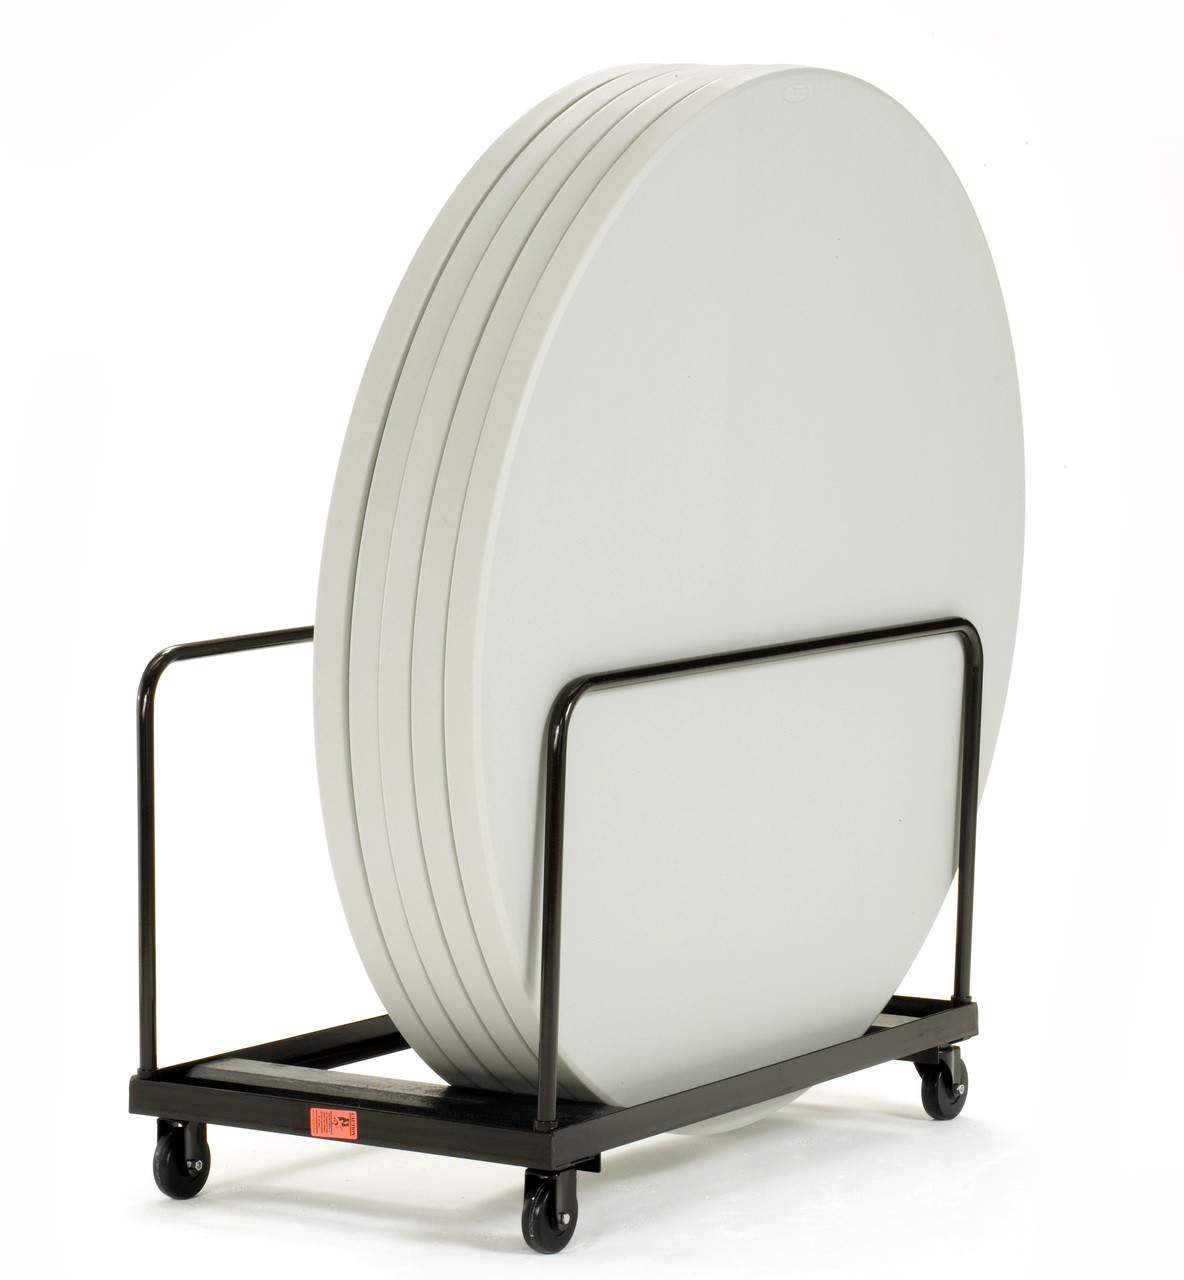 folding chair round kentucky 8 10 capacity edge stack rectangle table dolly by national public seating